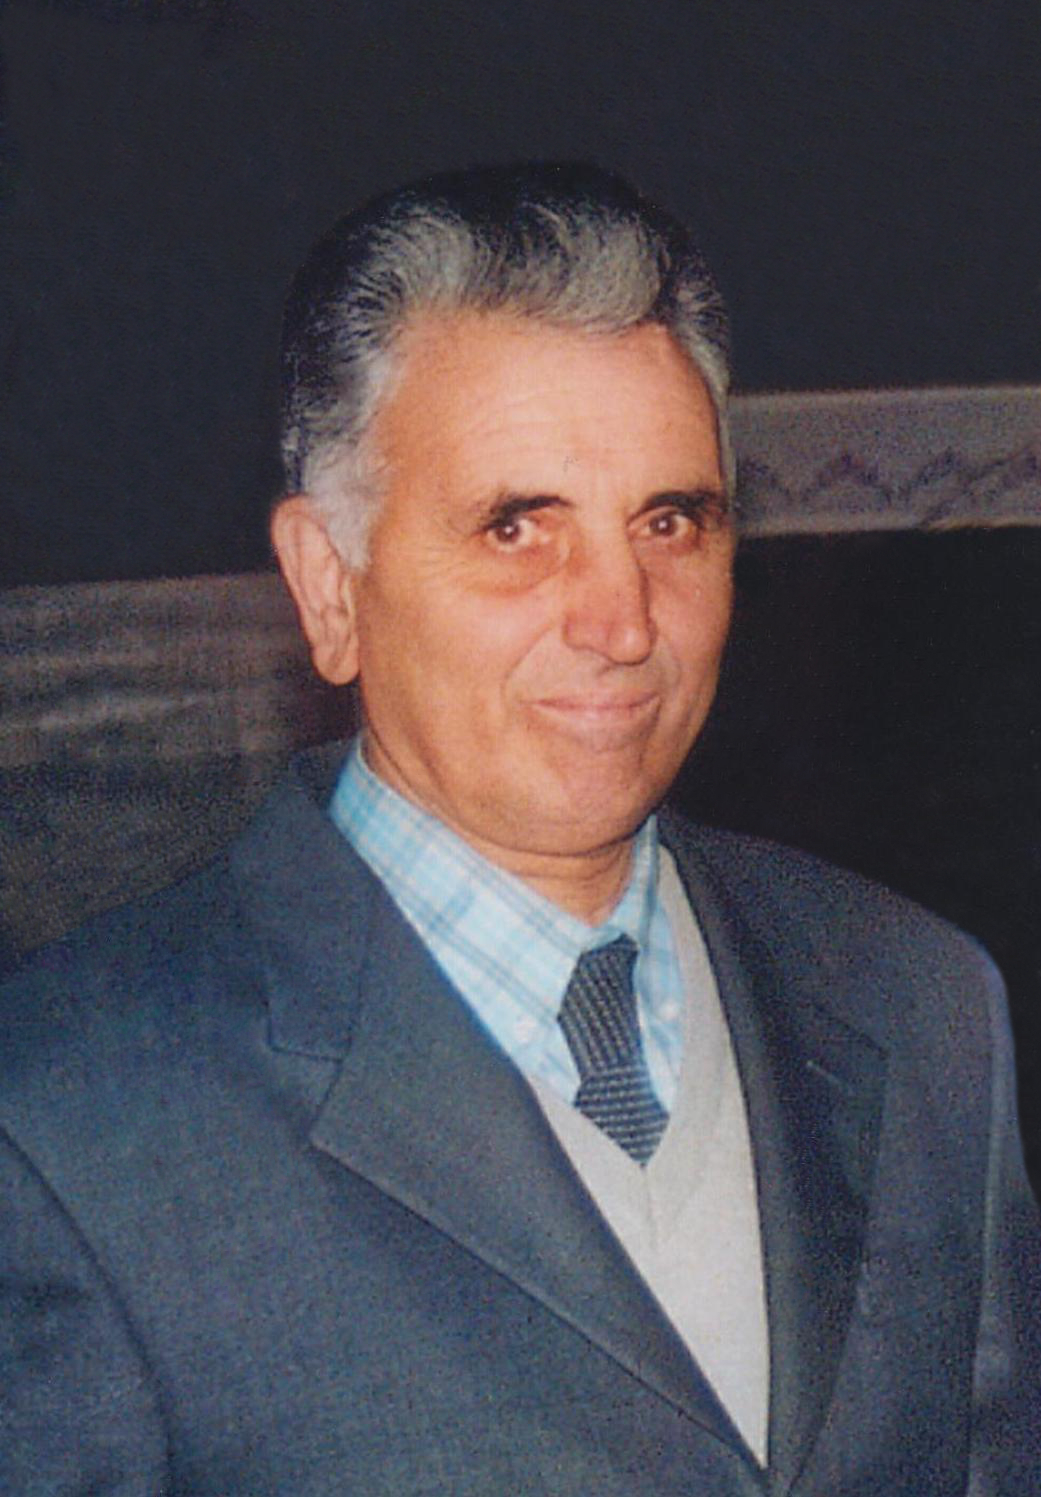 MAINOLDI GUIDO